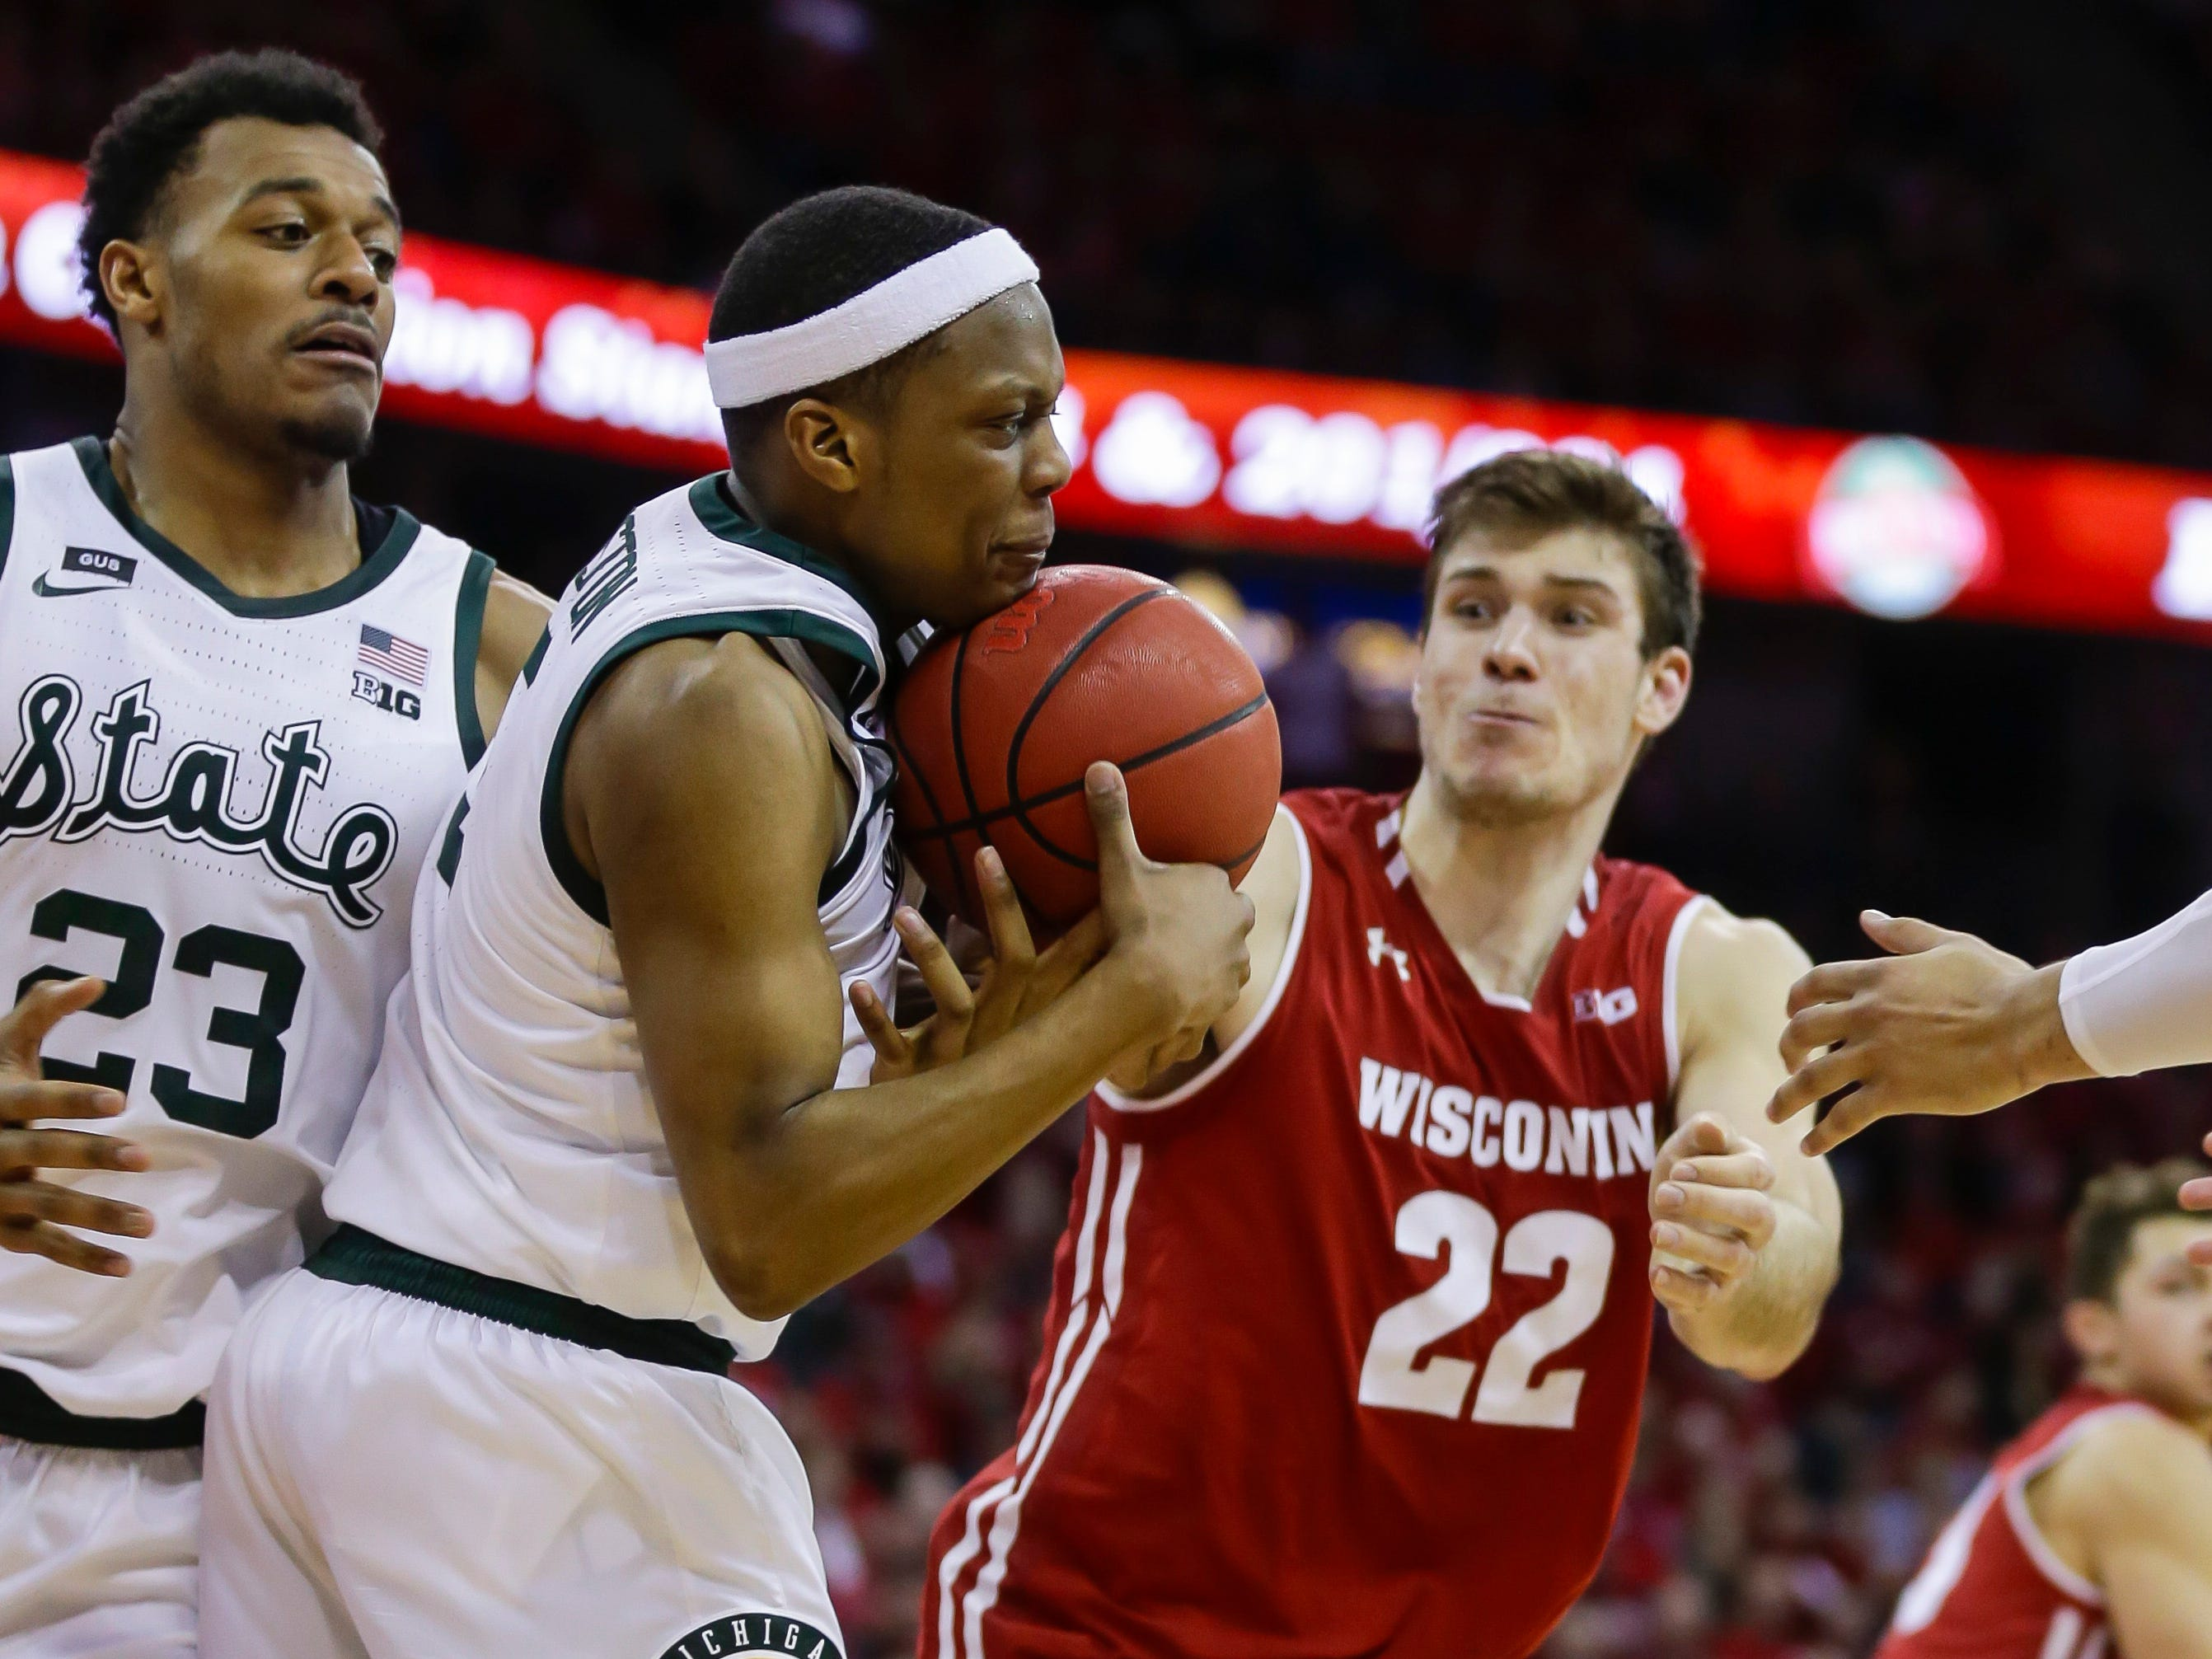 Michigan States's Cassius Winston (5) grabs a defensive rebound next to Wisconsin's Ethan Happ (22) during the second half of an NCAA college basketball game Tuesday, Feb. 12, 2019, in Madison, Wis. Michigan State won 67-59.